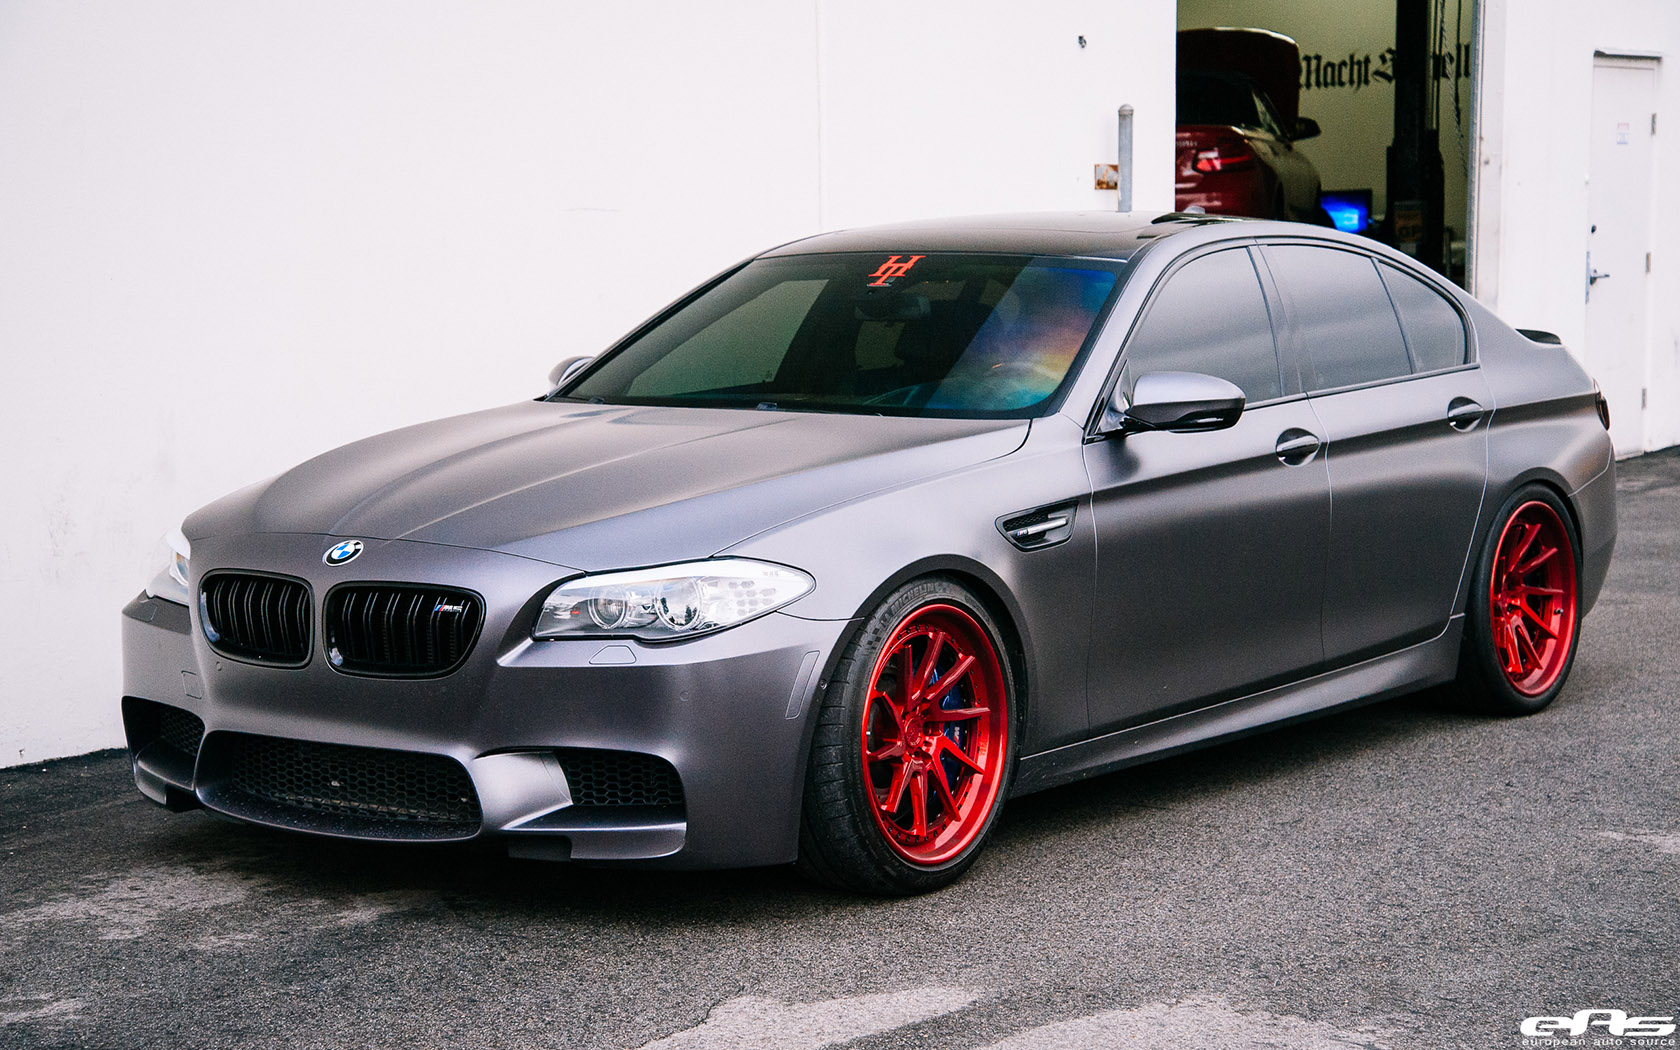 F10 Bmw M5 With 3d Design Aero Kit Installation By Eas